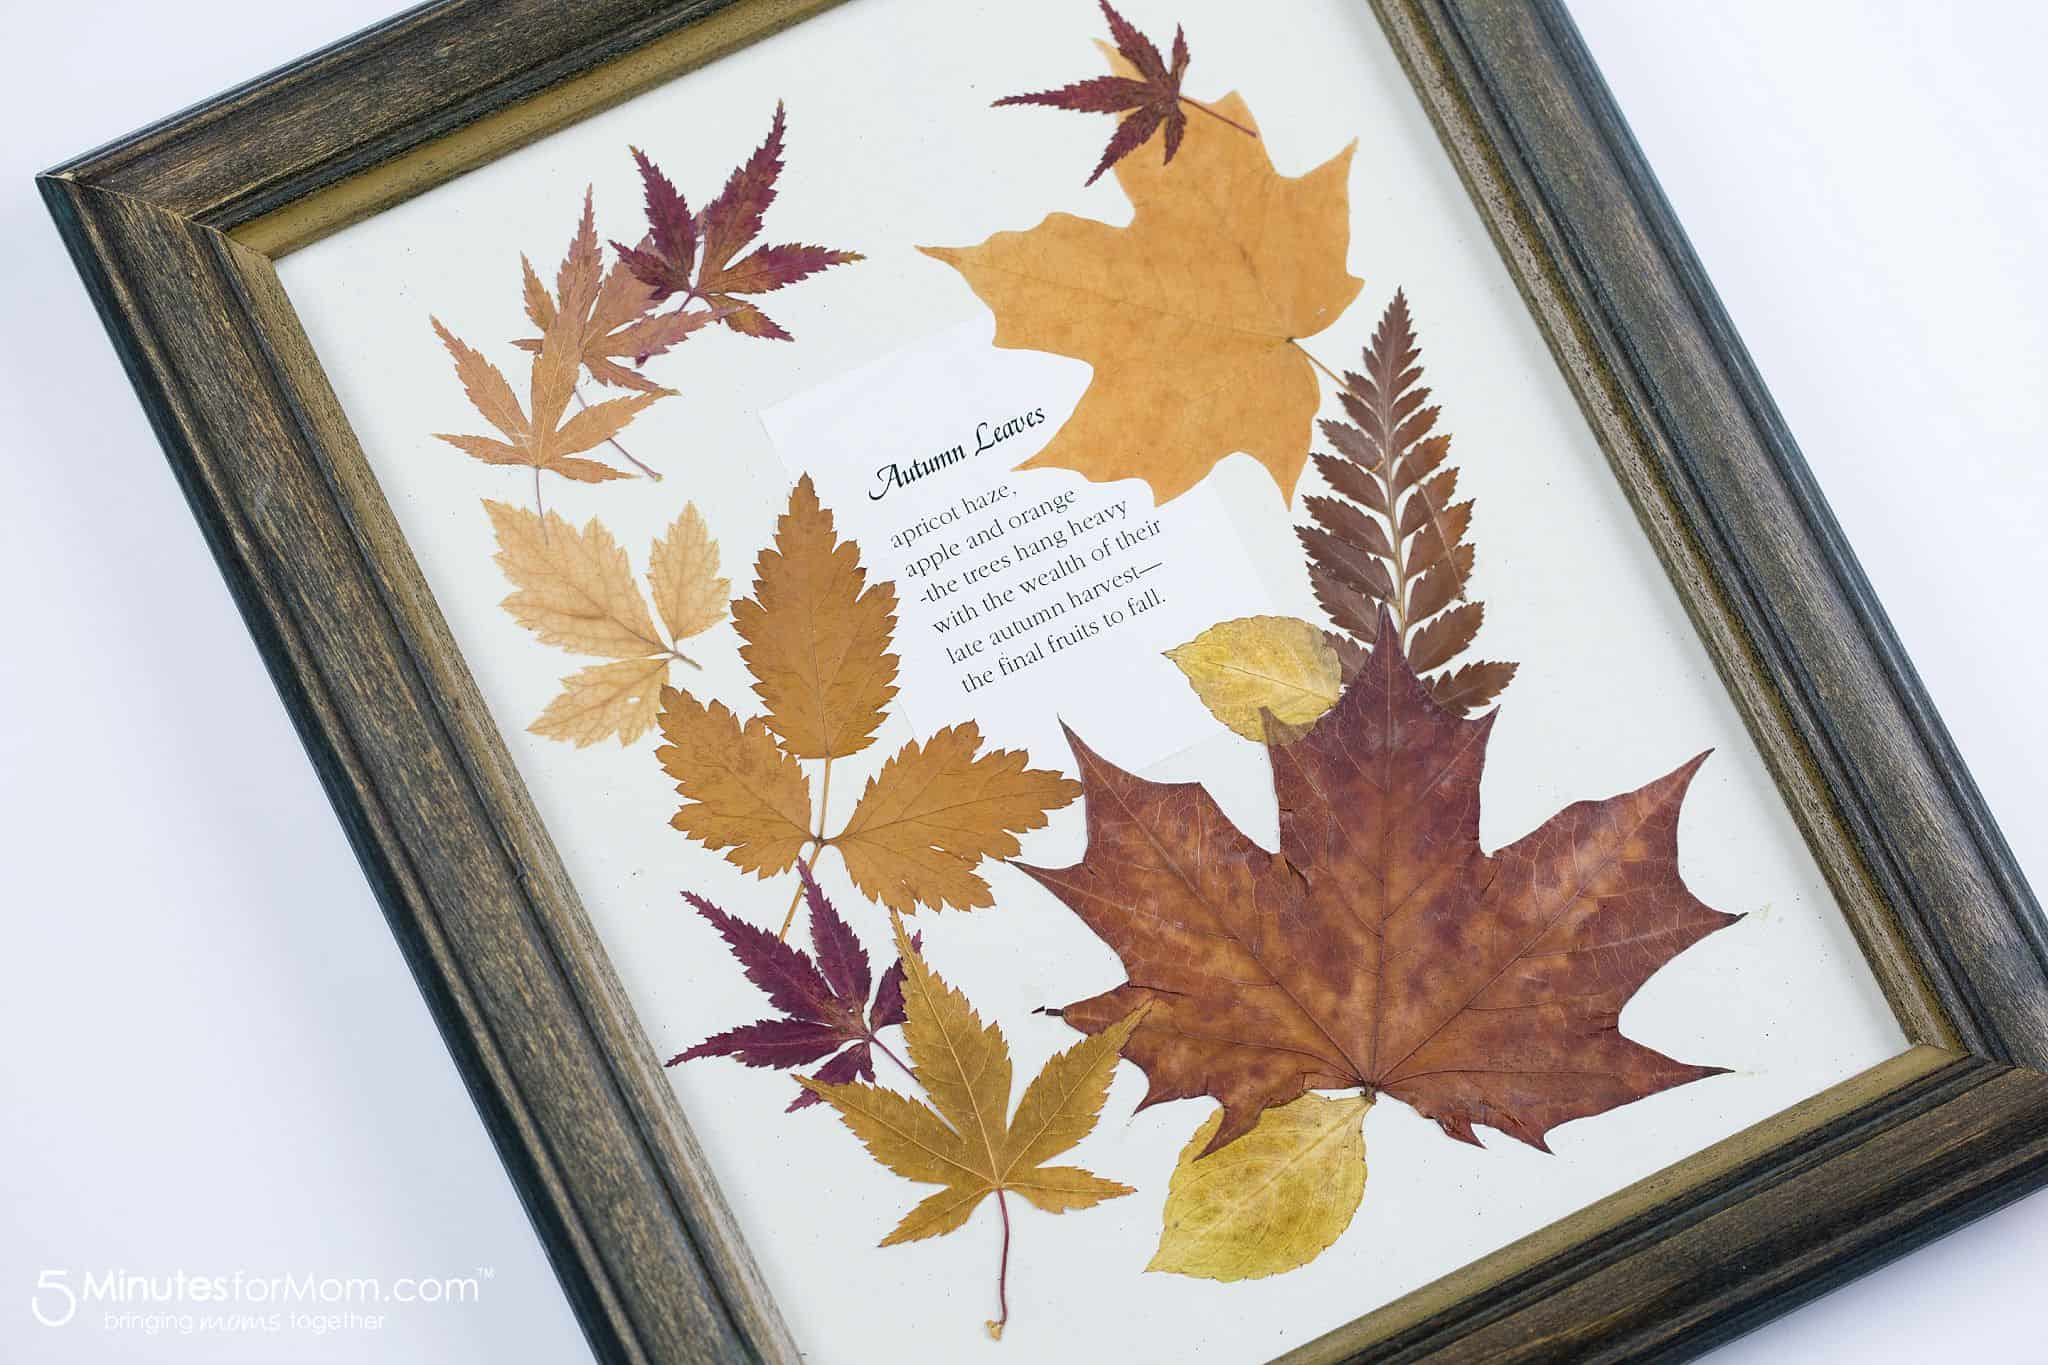 Framed pressed leaves and fall poem